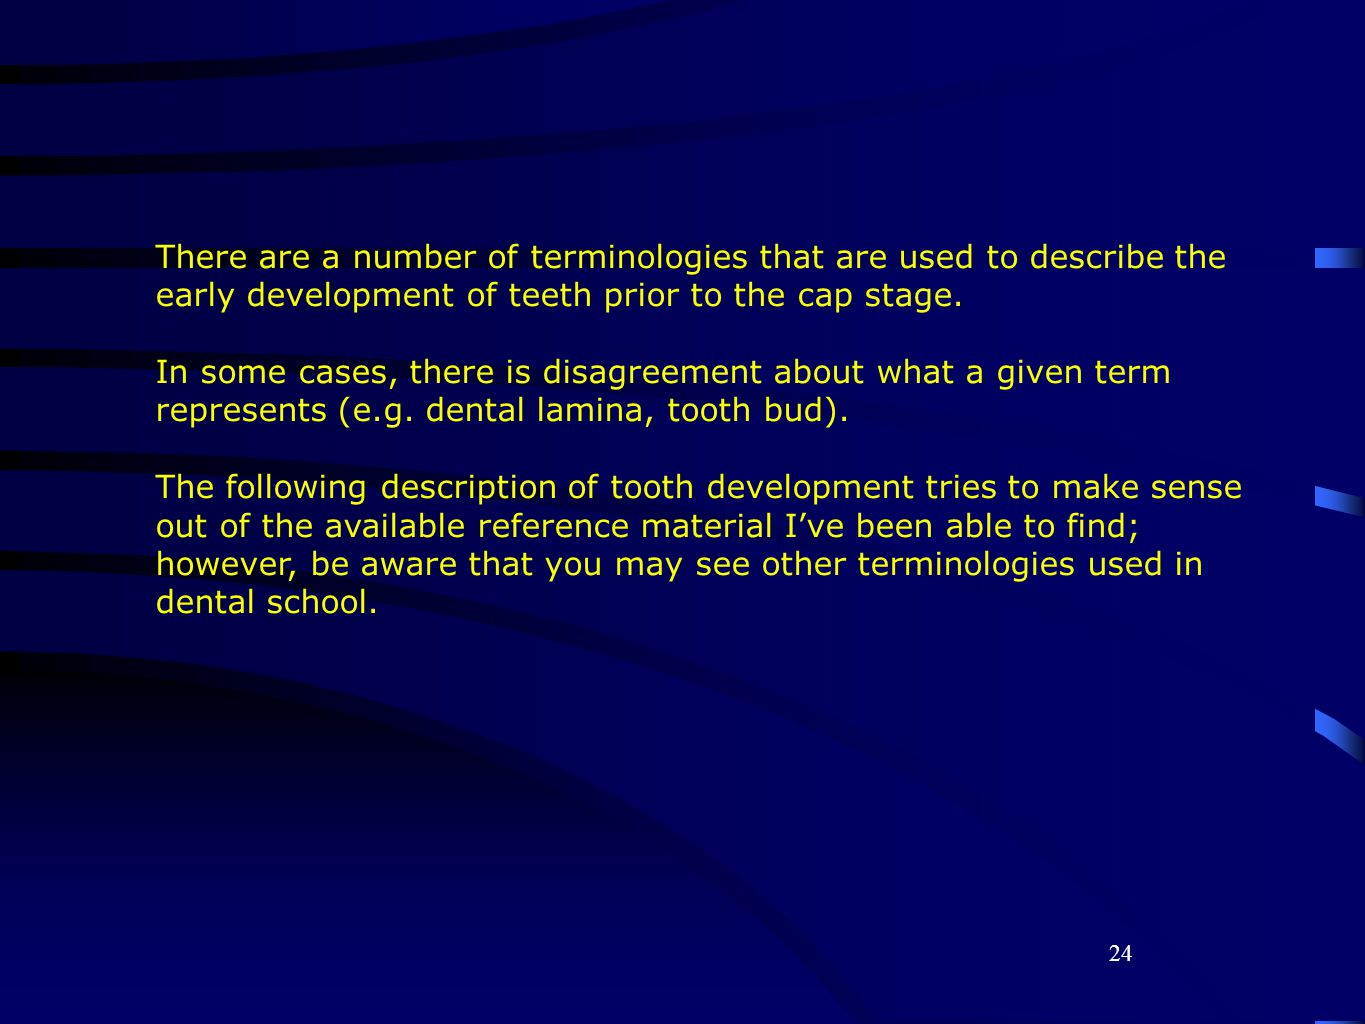 There are a number of terminologies that are used to describe the early development of teeth prior to the cap stage.